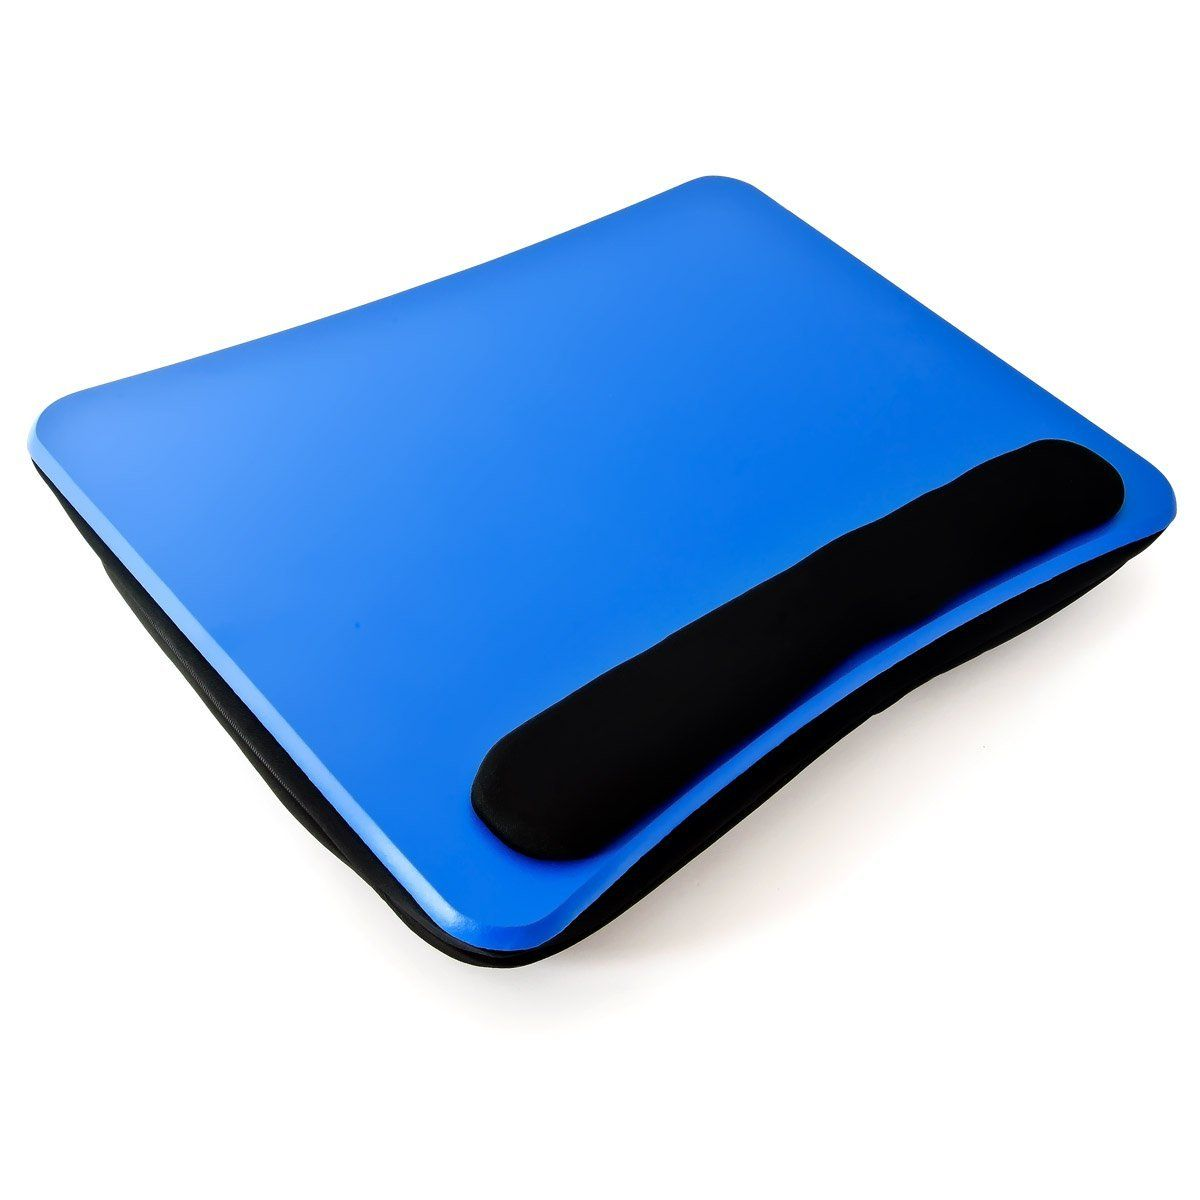 Amazon.de: Relaxdays 10016335 Knietisch Laptoptisch Laptopkissen, blau